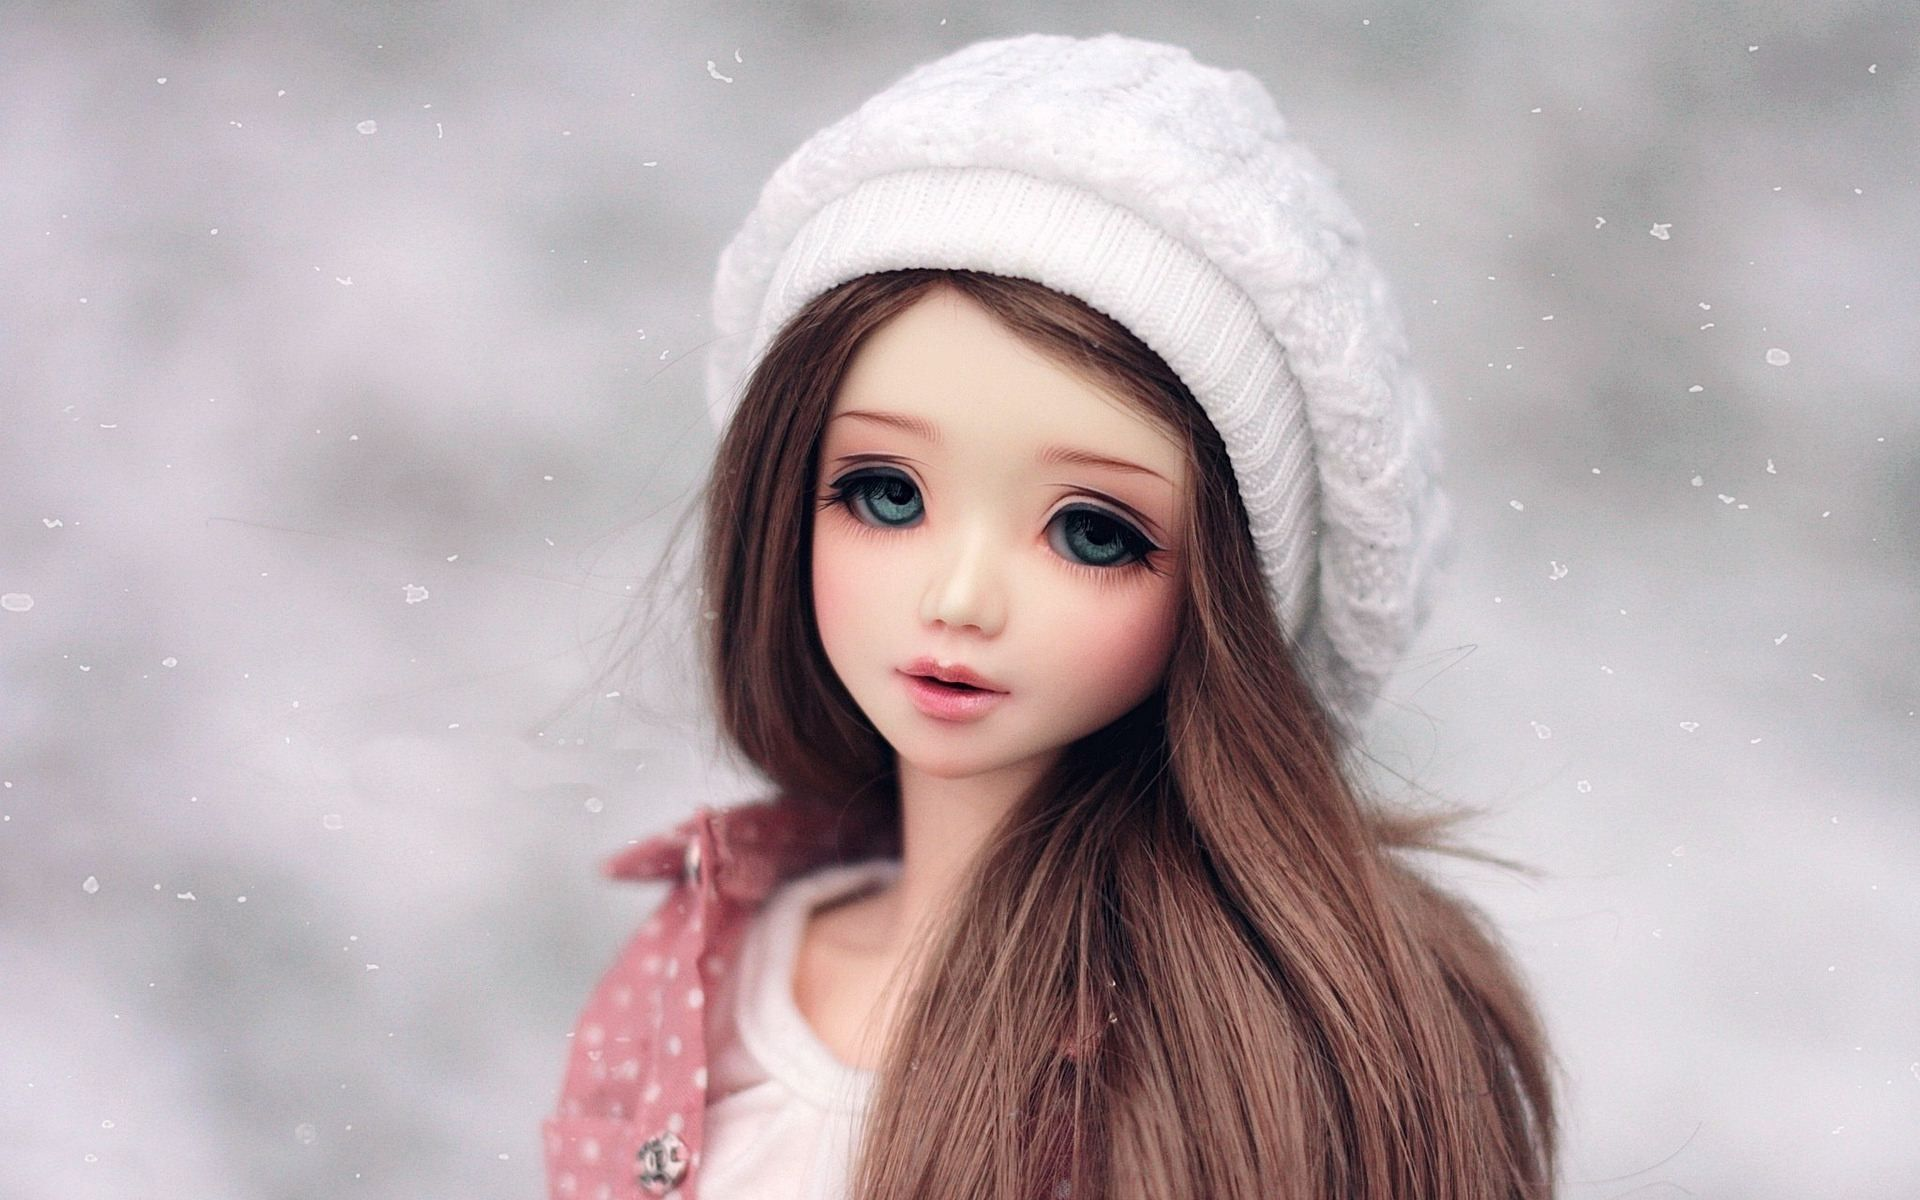 Barbie Doll Wallpapers Top Free Barbie Doll Backgrounds Wallpaperaccess